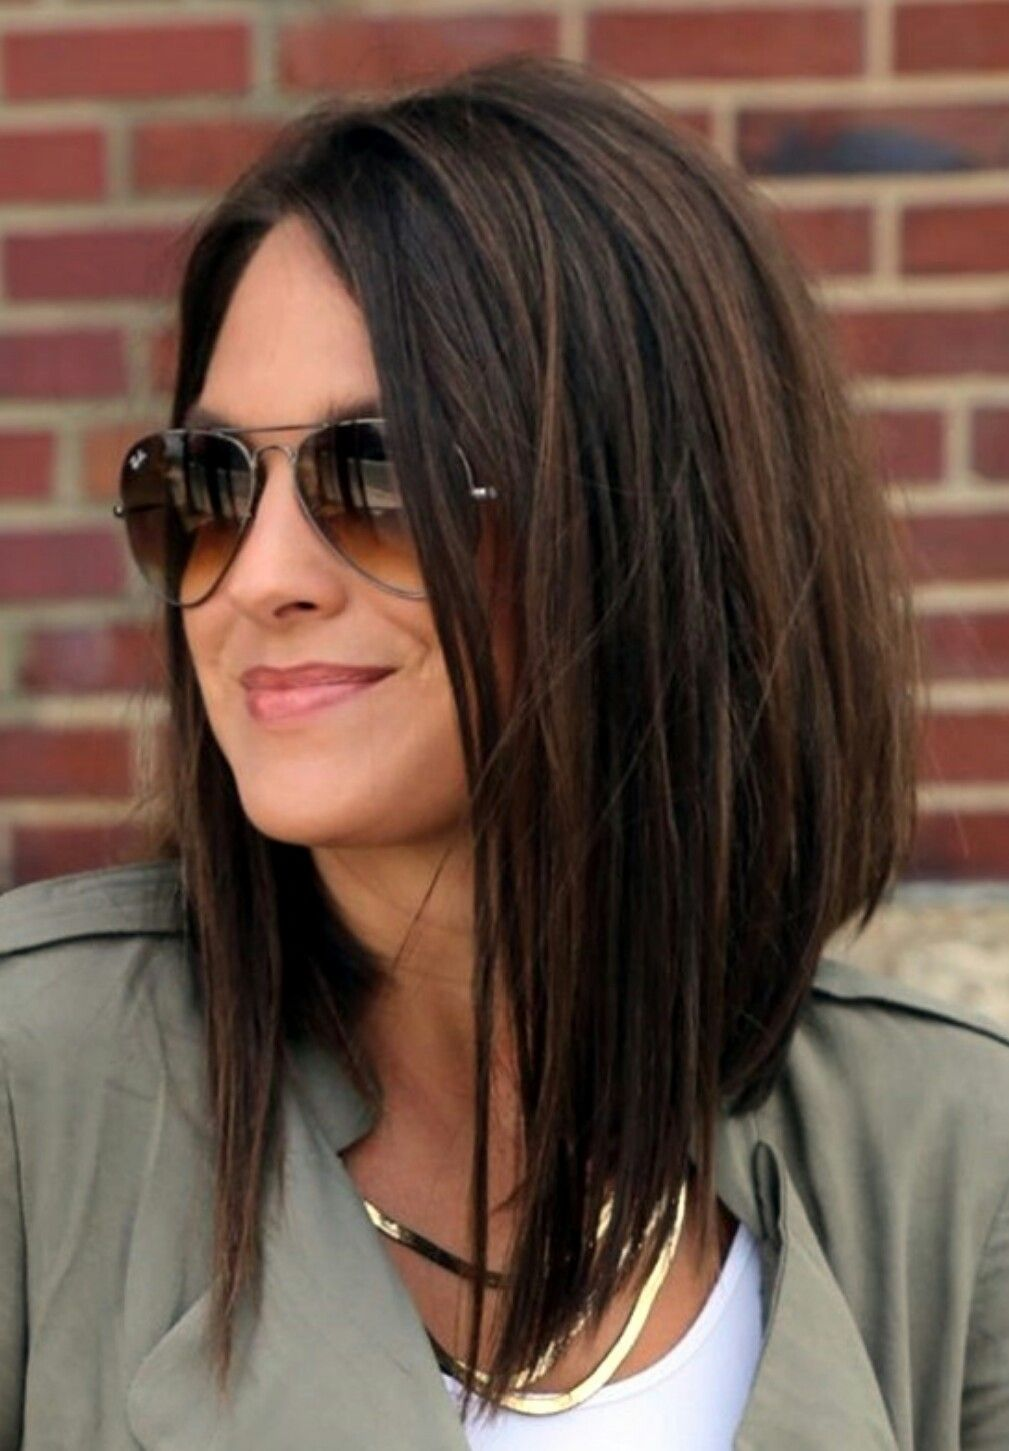 Women's Long Hairstyles Entrancing Love This Cut Just Need To Find The Guts To Actually Follow